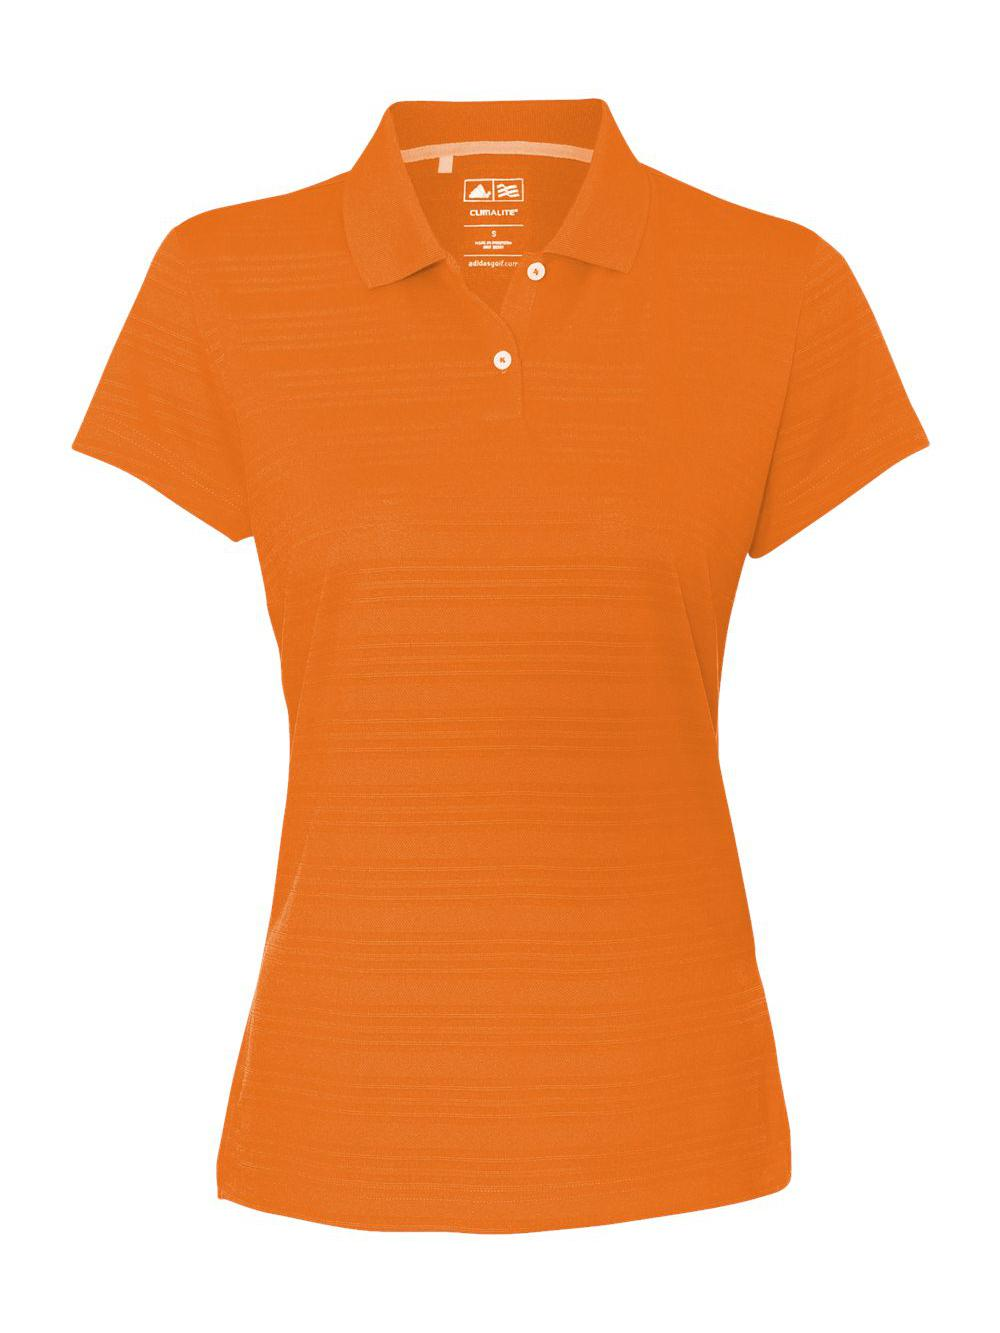 Adidas-Golf-Women-039-s-ClimaLite-Textured-Short-Sleeve-Polo-A162 thumbnail 3